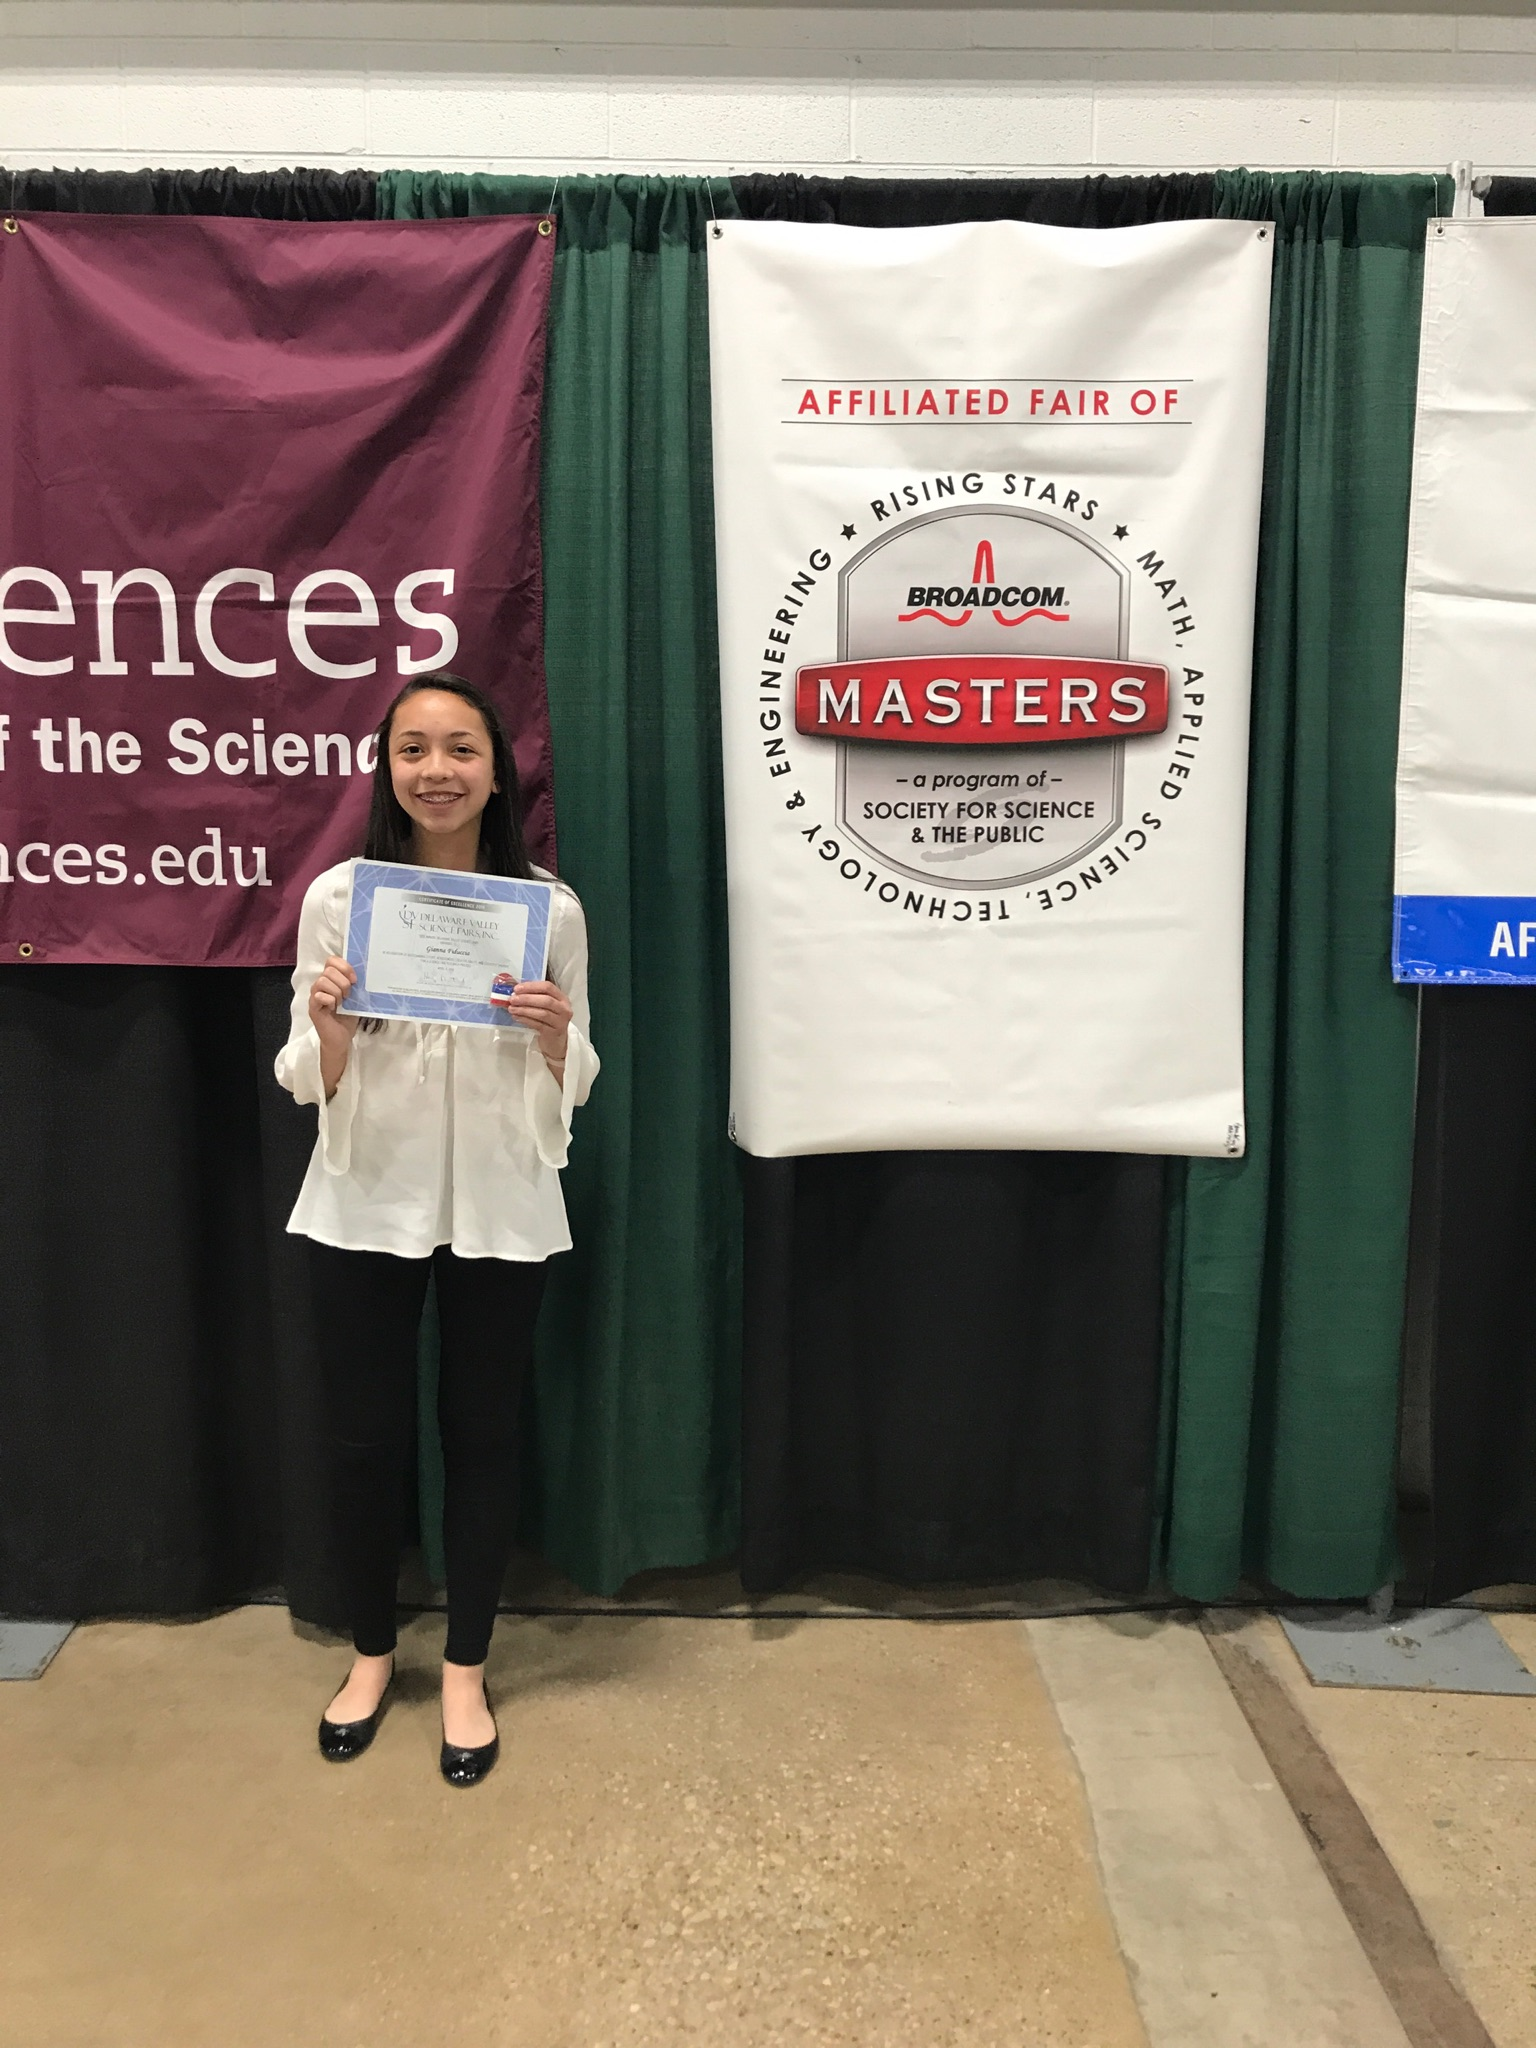 Freshman wins 3rd Place at Delaware Valley Science Fair